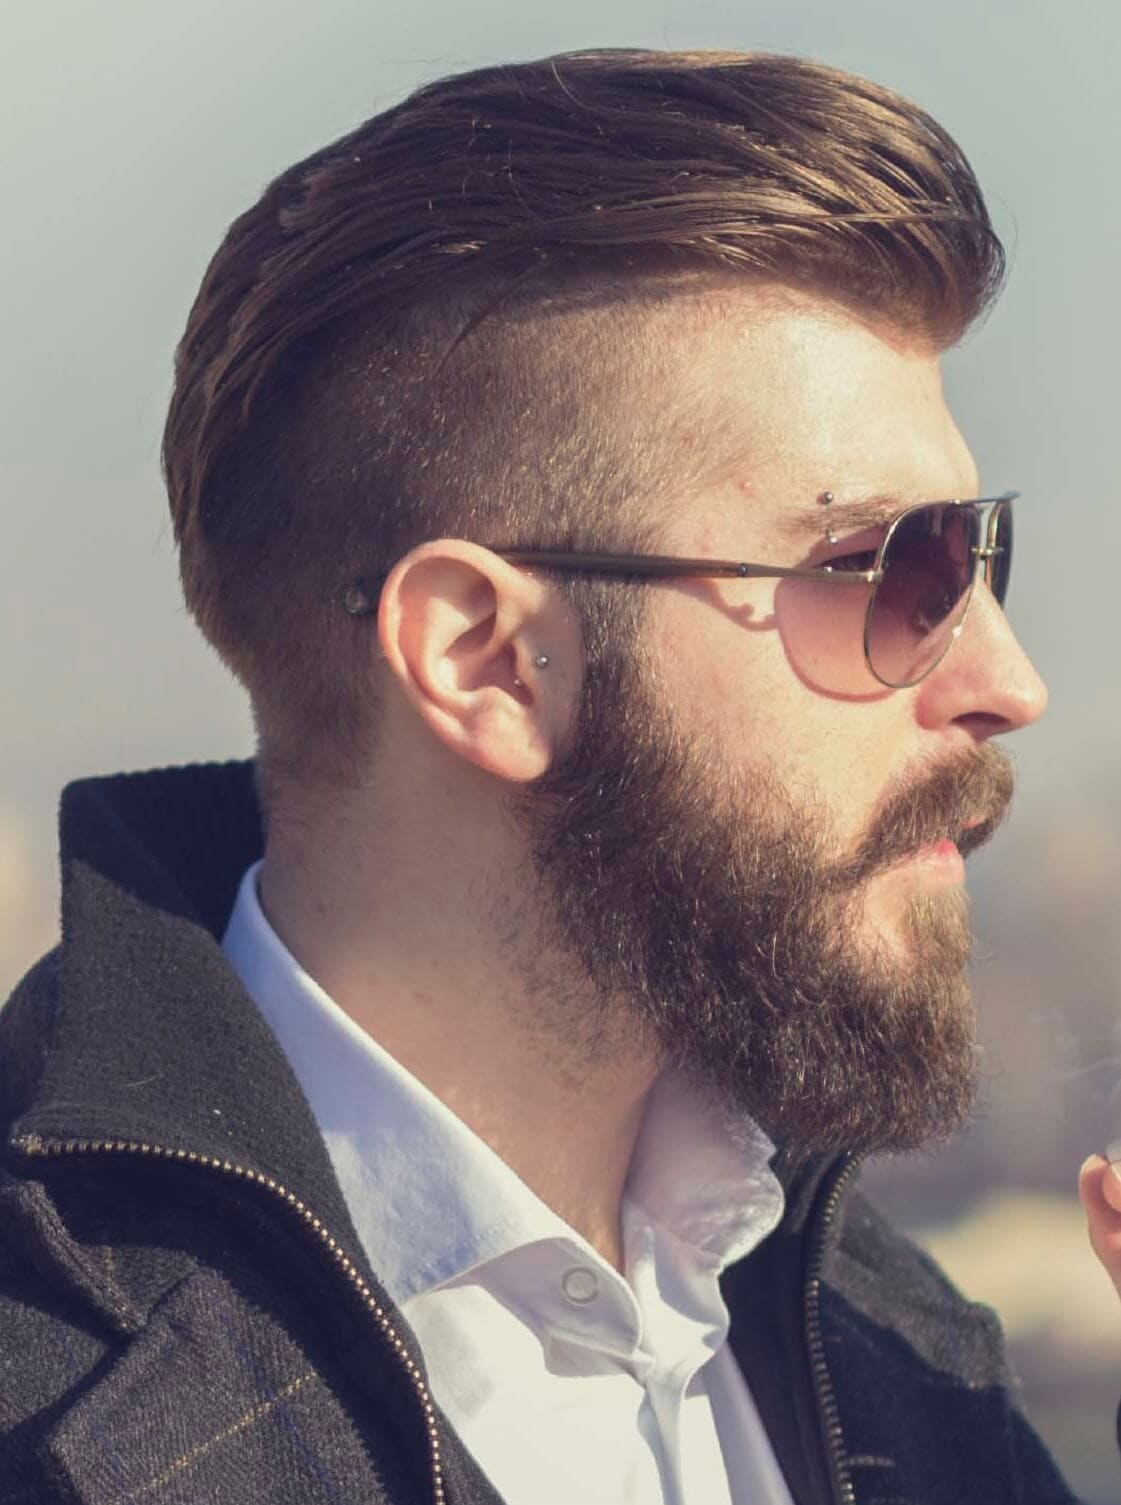 The swoop haircut on bearded man